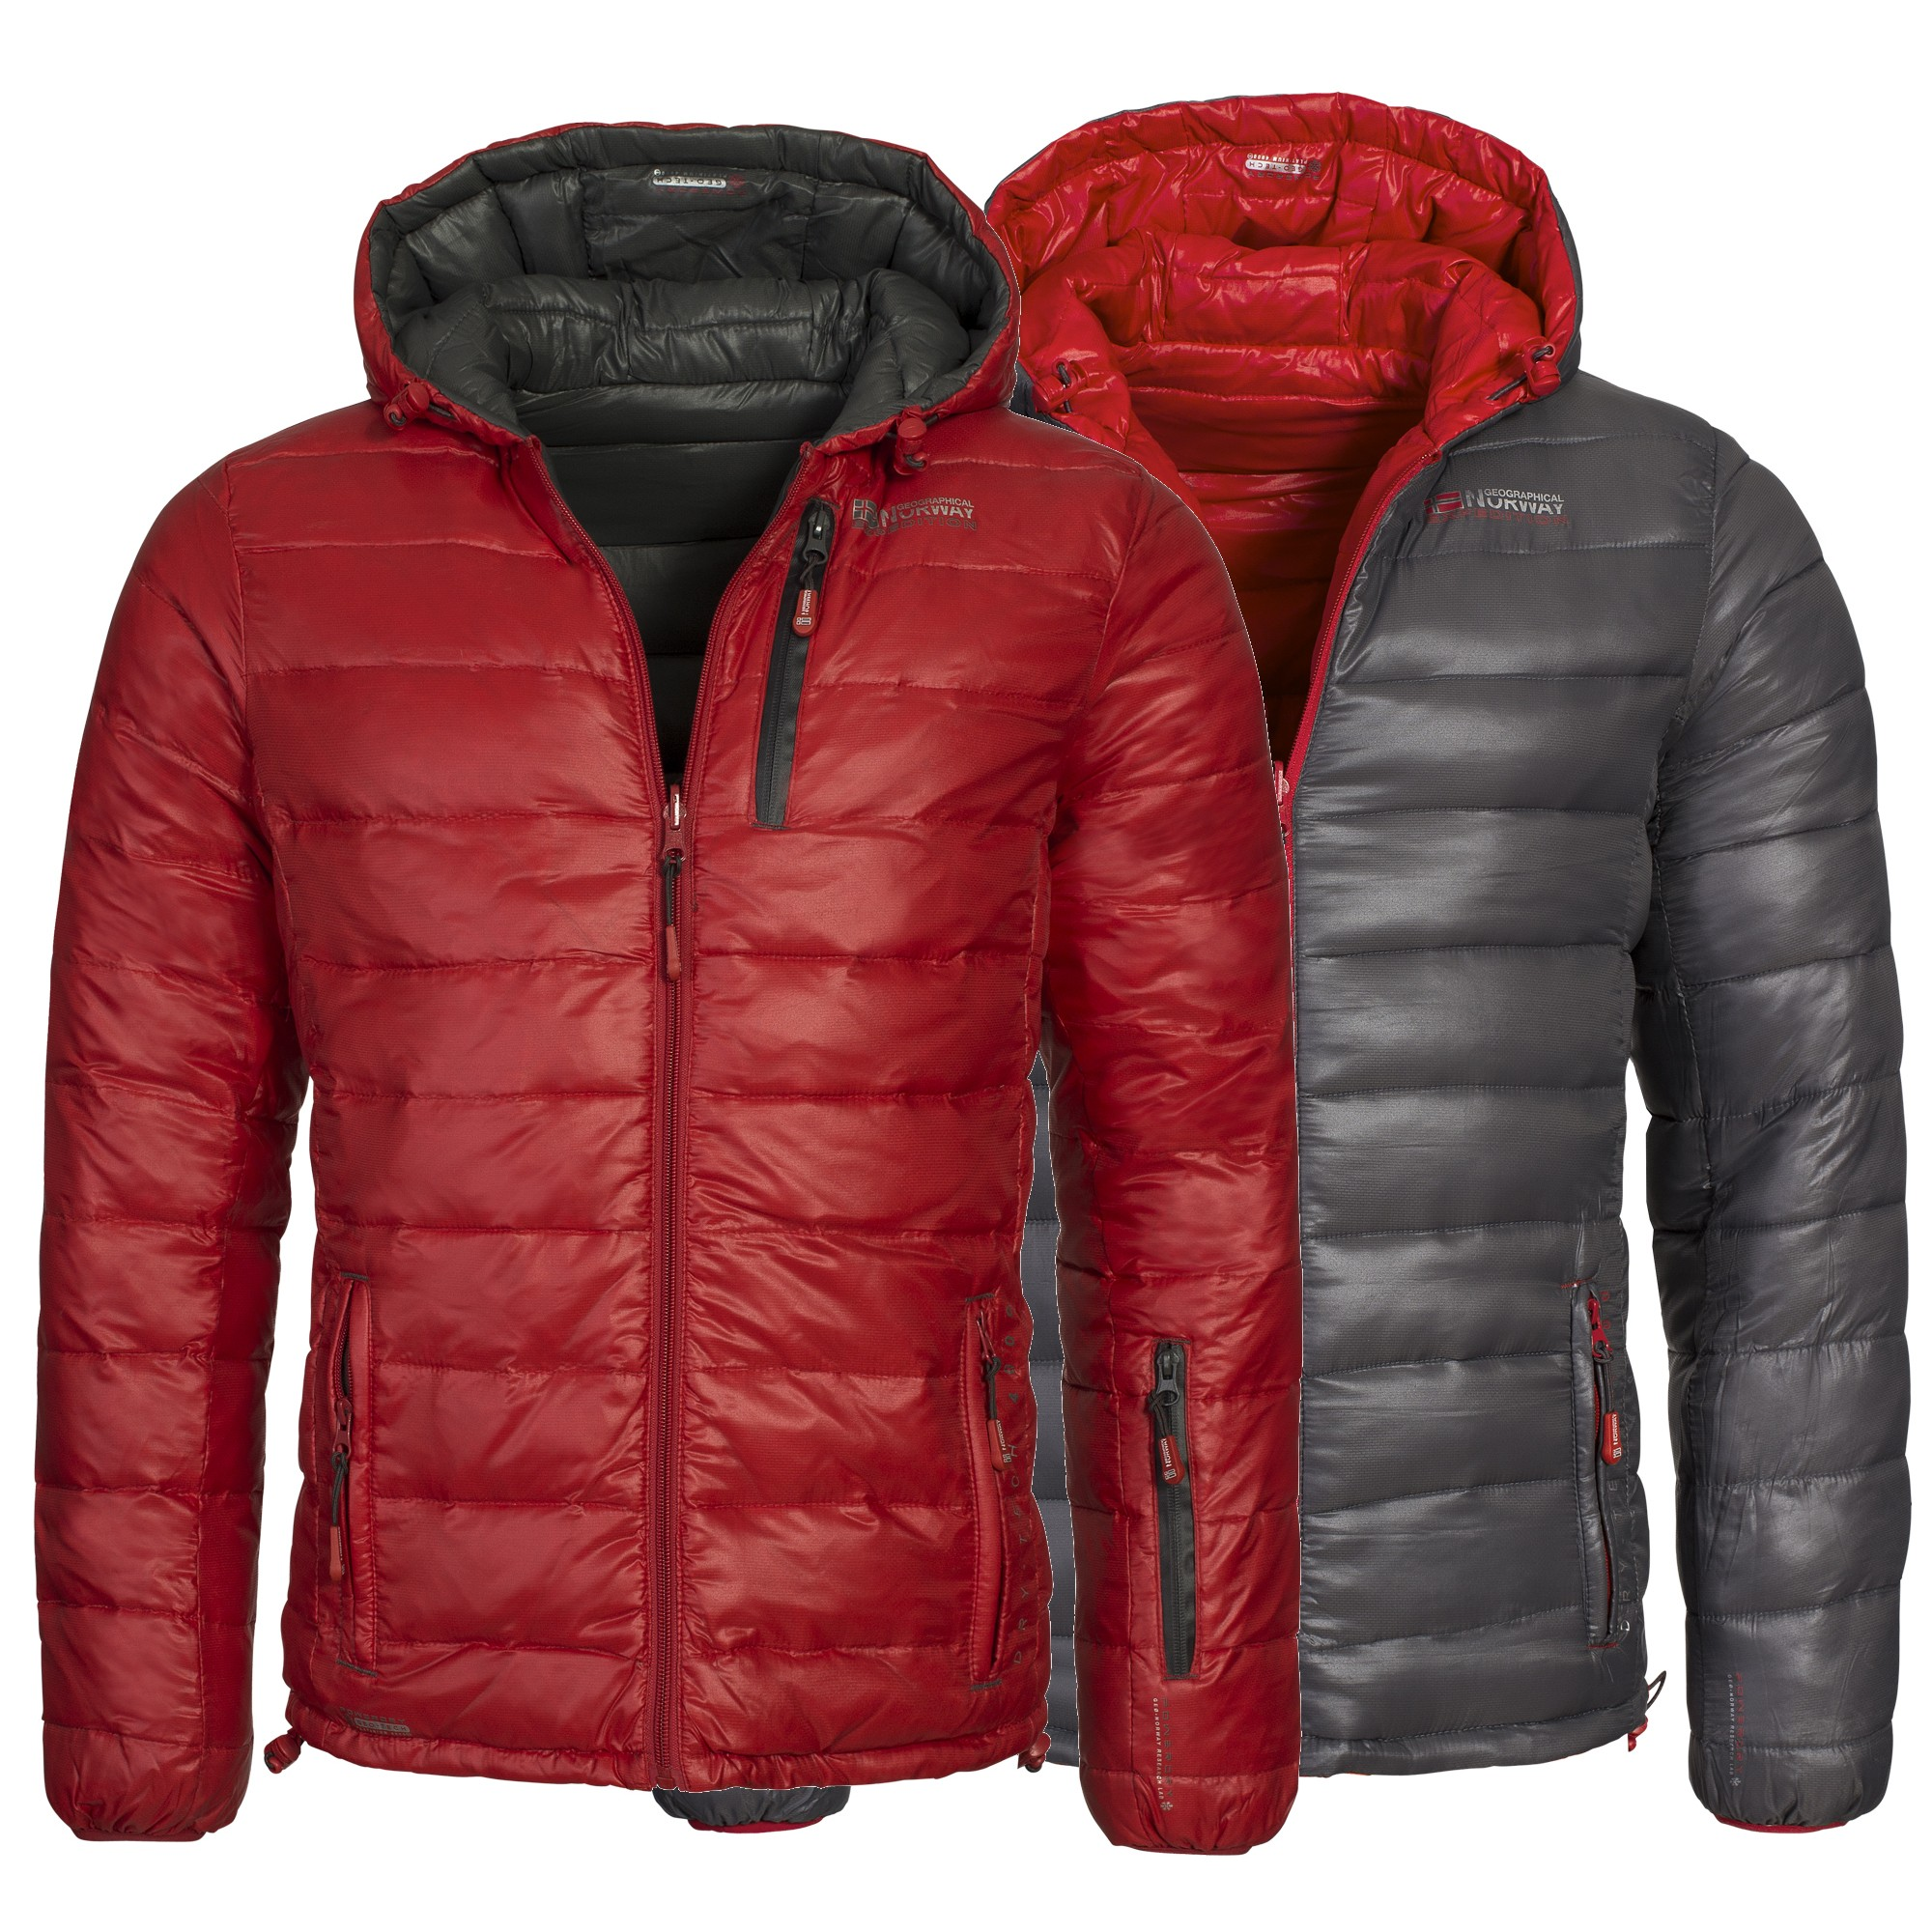 geographical norway herren daunenjacke steppjacke winterjacke wende jacke ebay. Black Bedroom Furniture Sets. Home Design Ideas